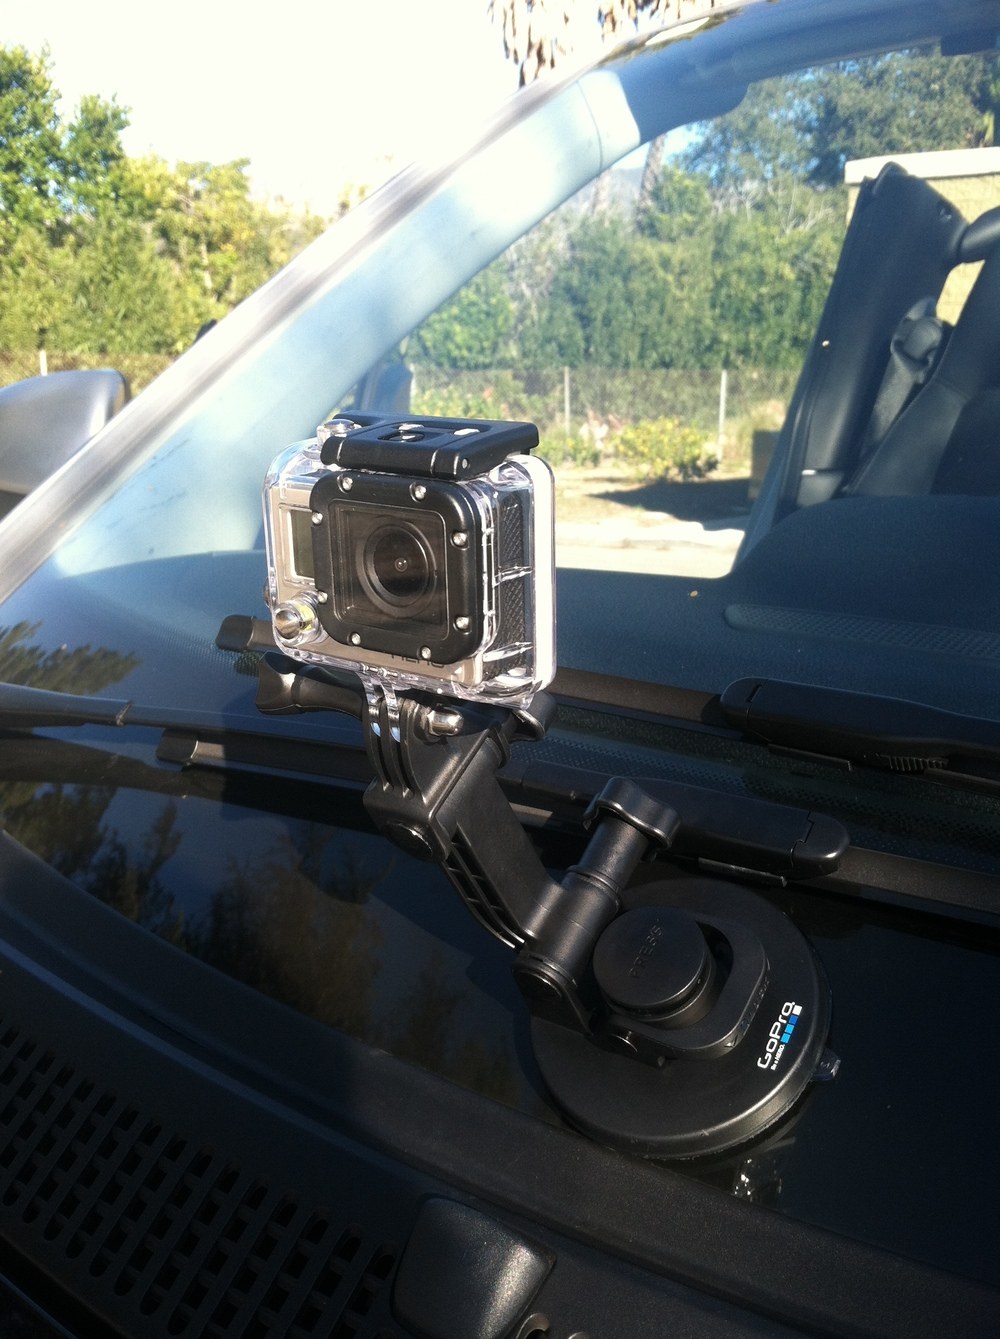 And finally, the GoPro is added.